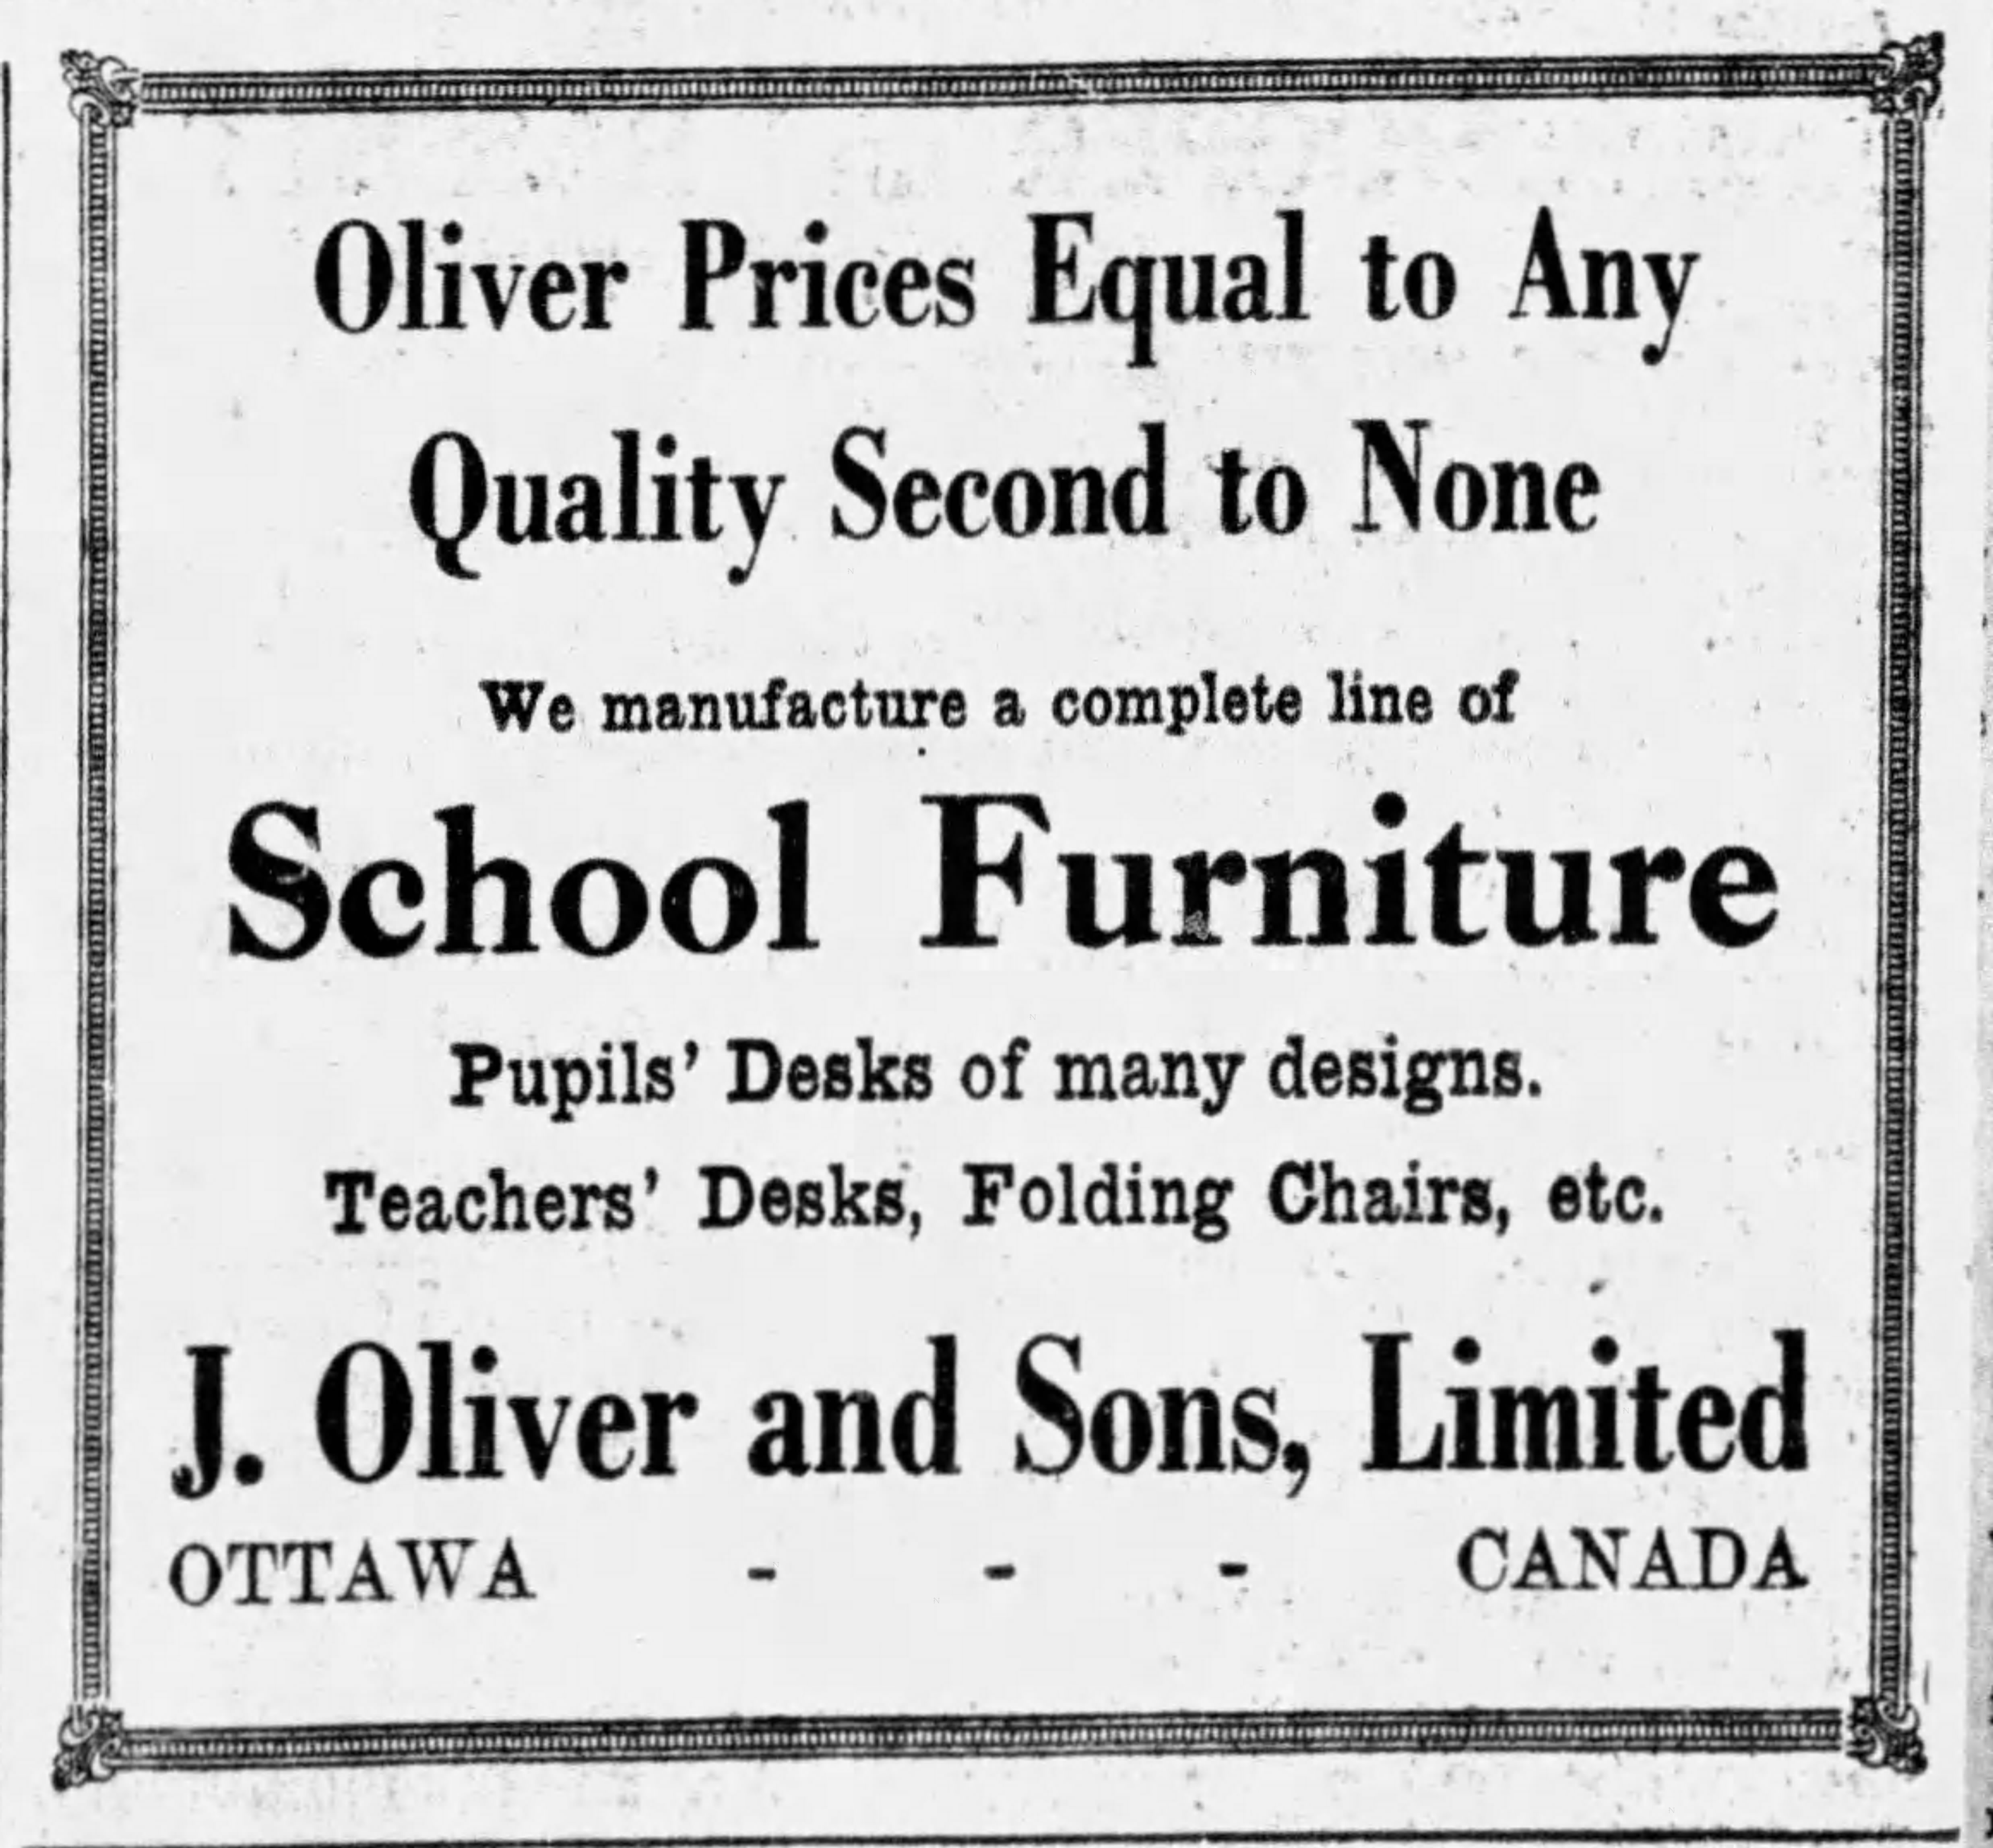 A newspaper ad from the Ottawa Citizen, Saturday, August 11, 1928. advertising school furniture from Olijer and Sons.